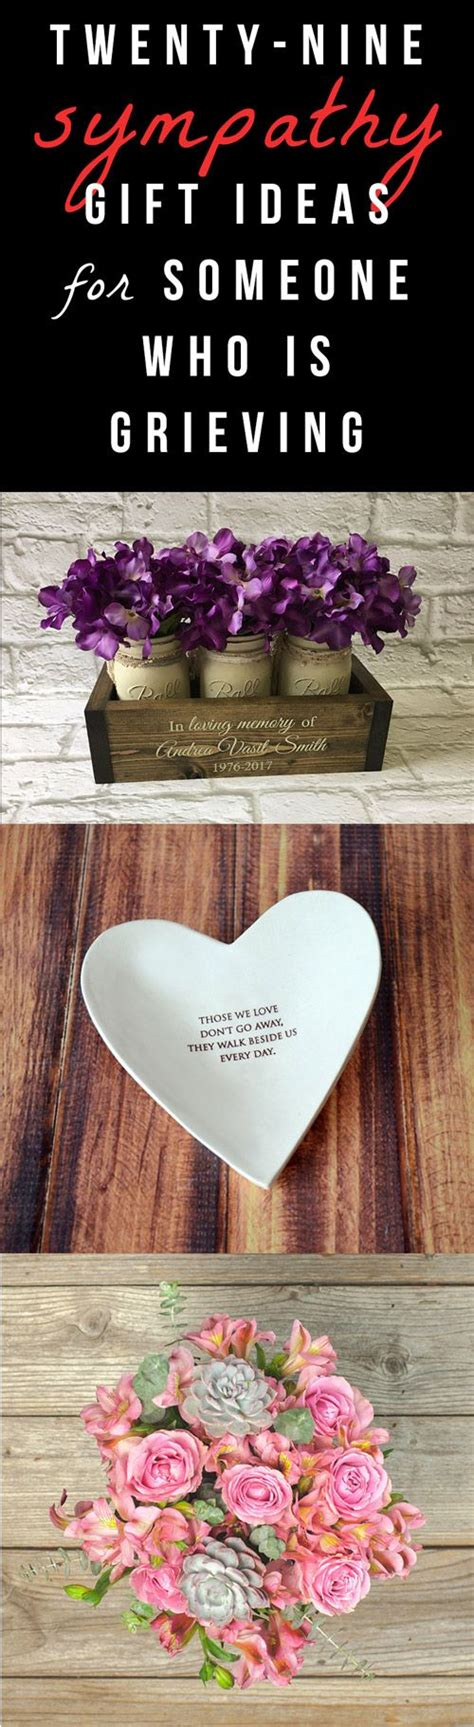 christmas ideas fpr someone who lost a loved one best 25 memorial gifts ideas on memorial ideas funeral ideas and funeral gifts